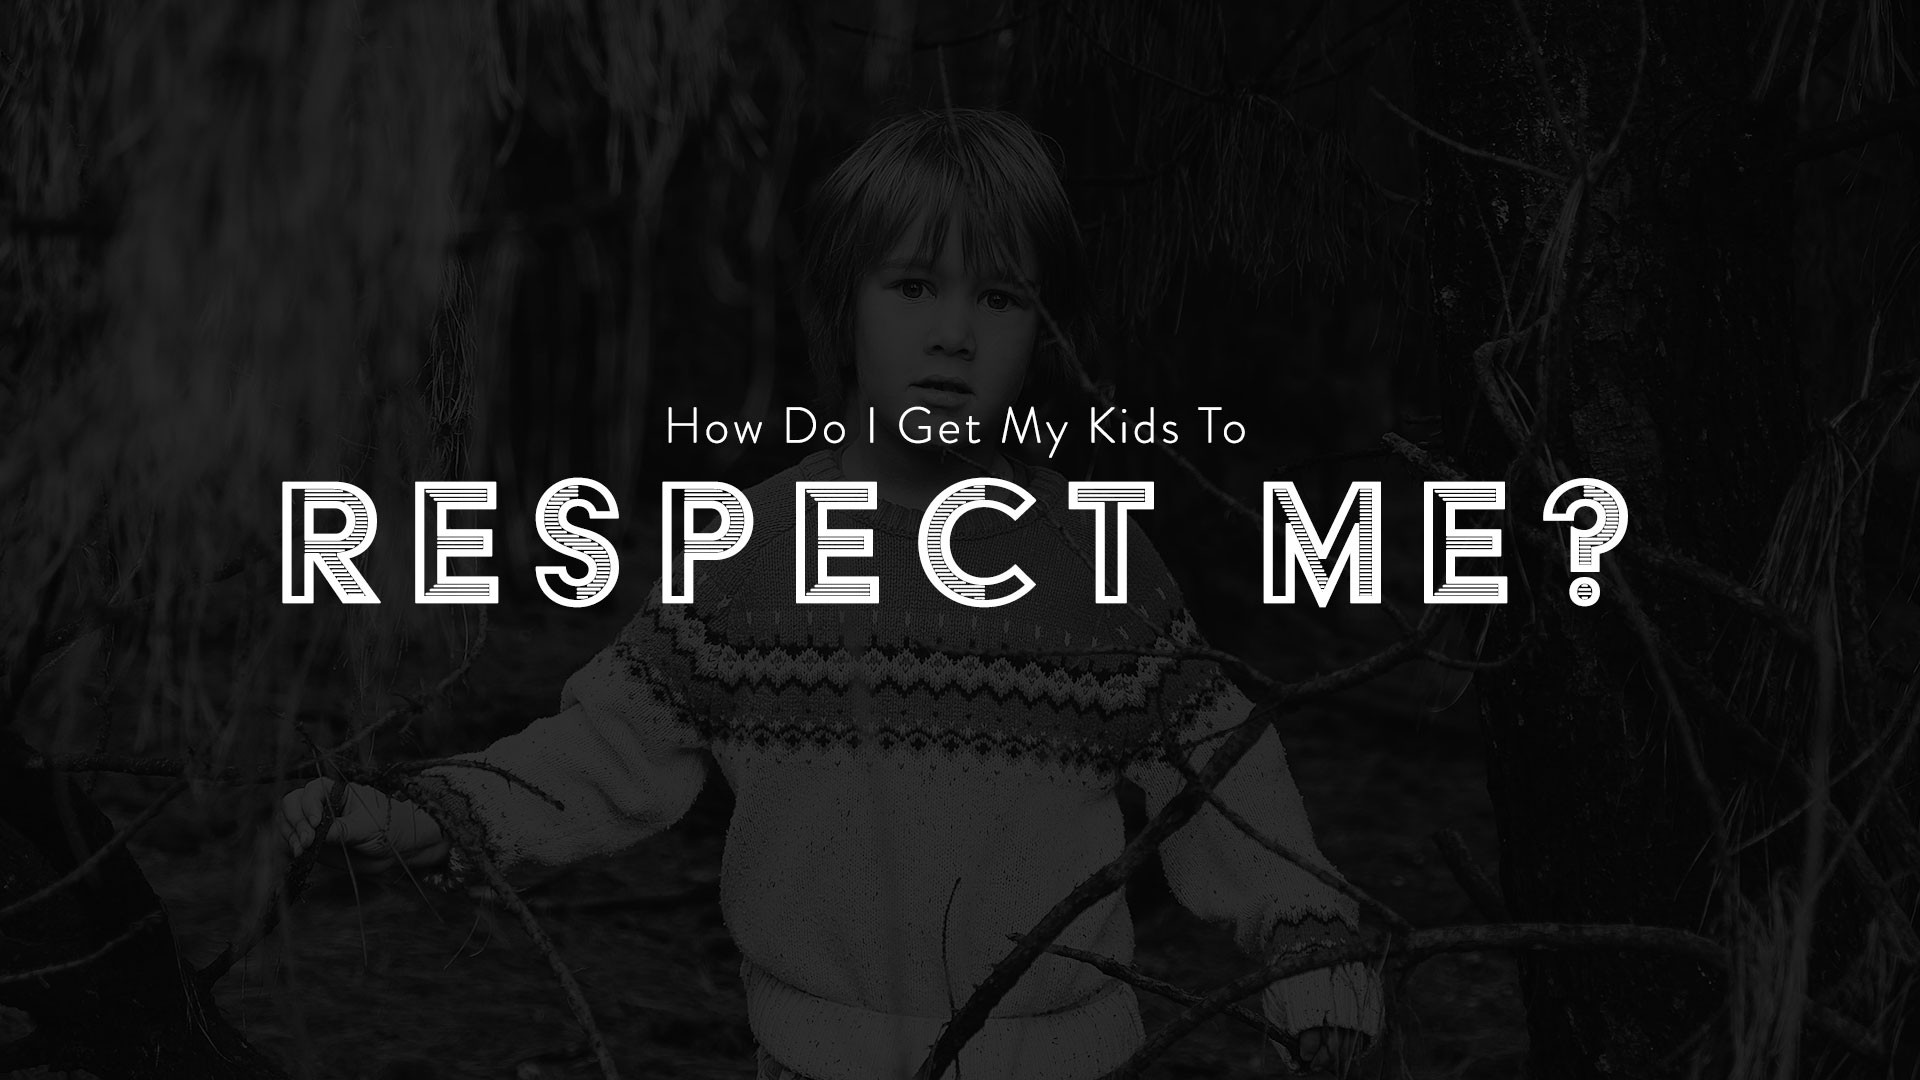 How Do I Get My Kids To Repsect Me?